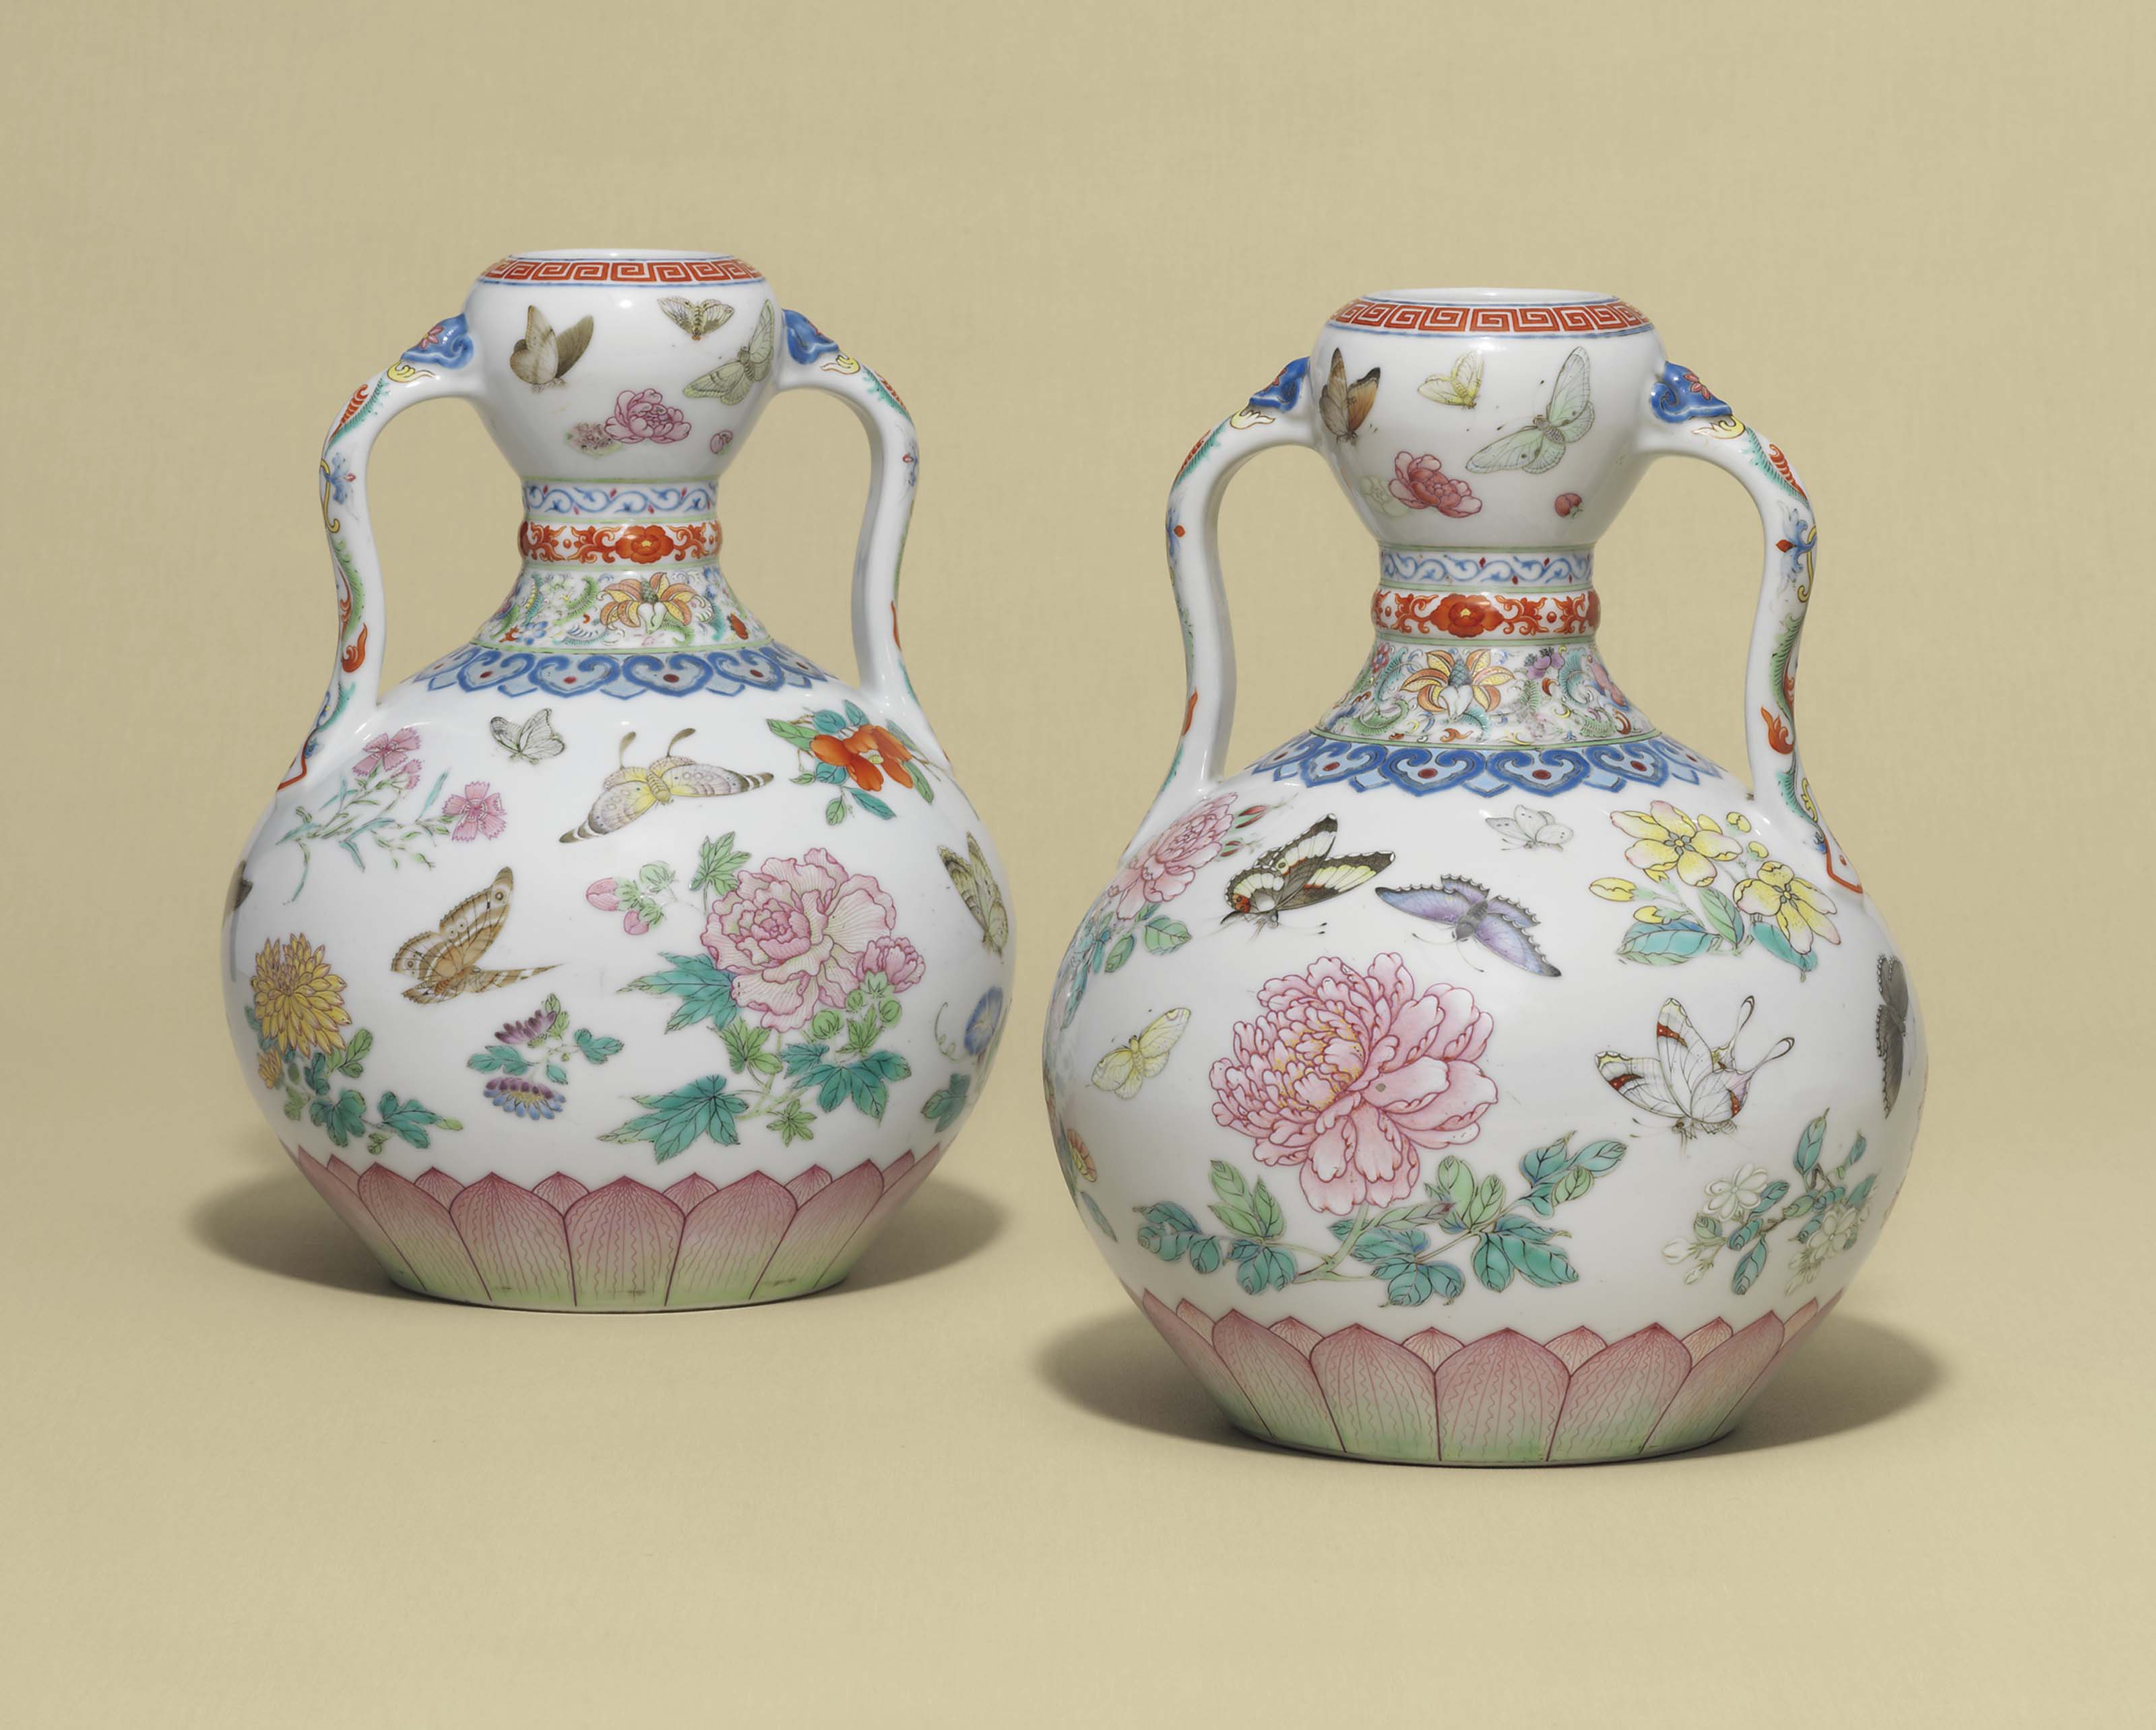 A MAGNIFICENT PAIR OF FAMILLE ROSE 'BUTTERFLY' DOUBLE-GOURD VASES